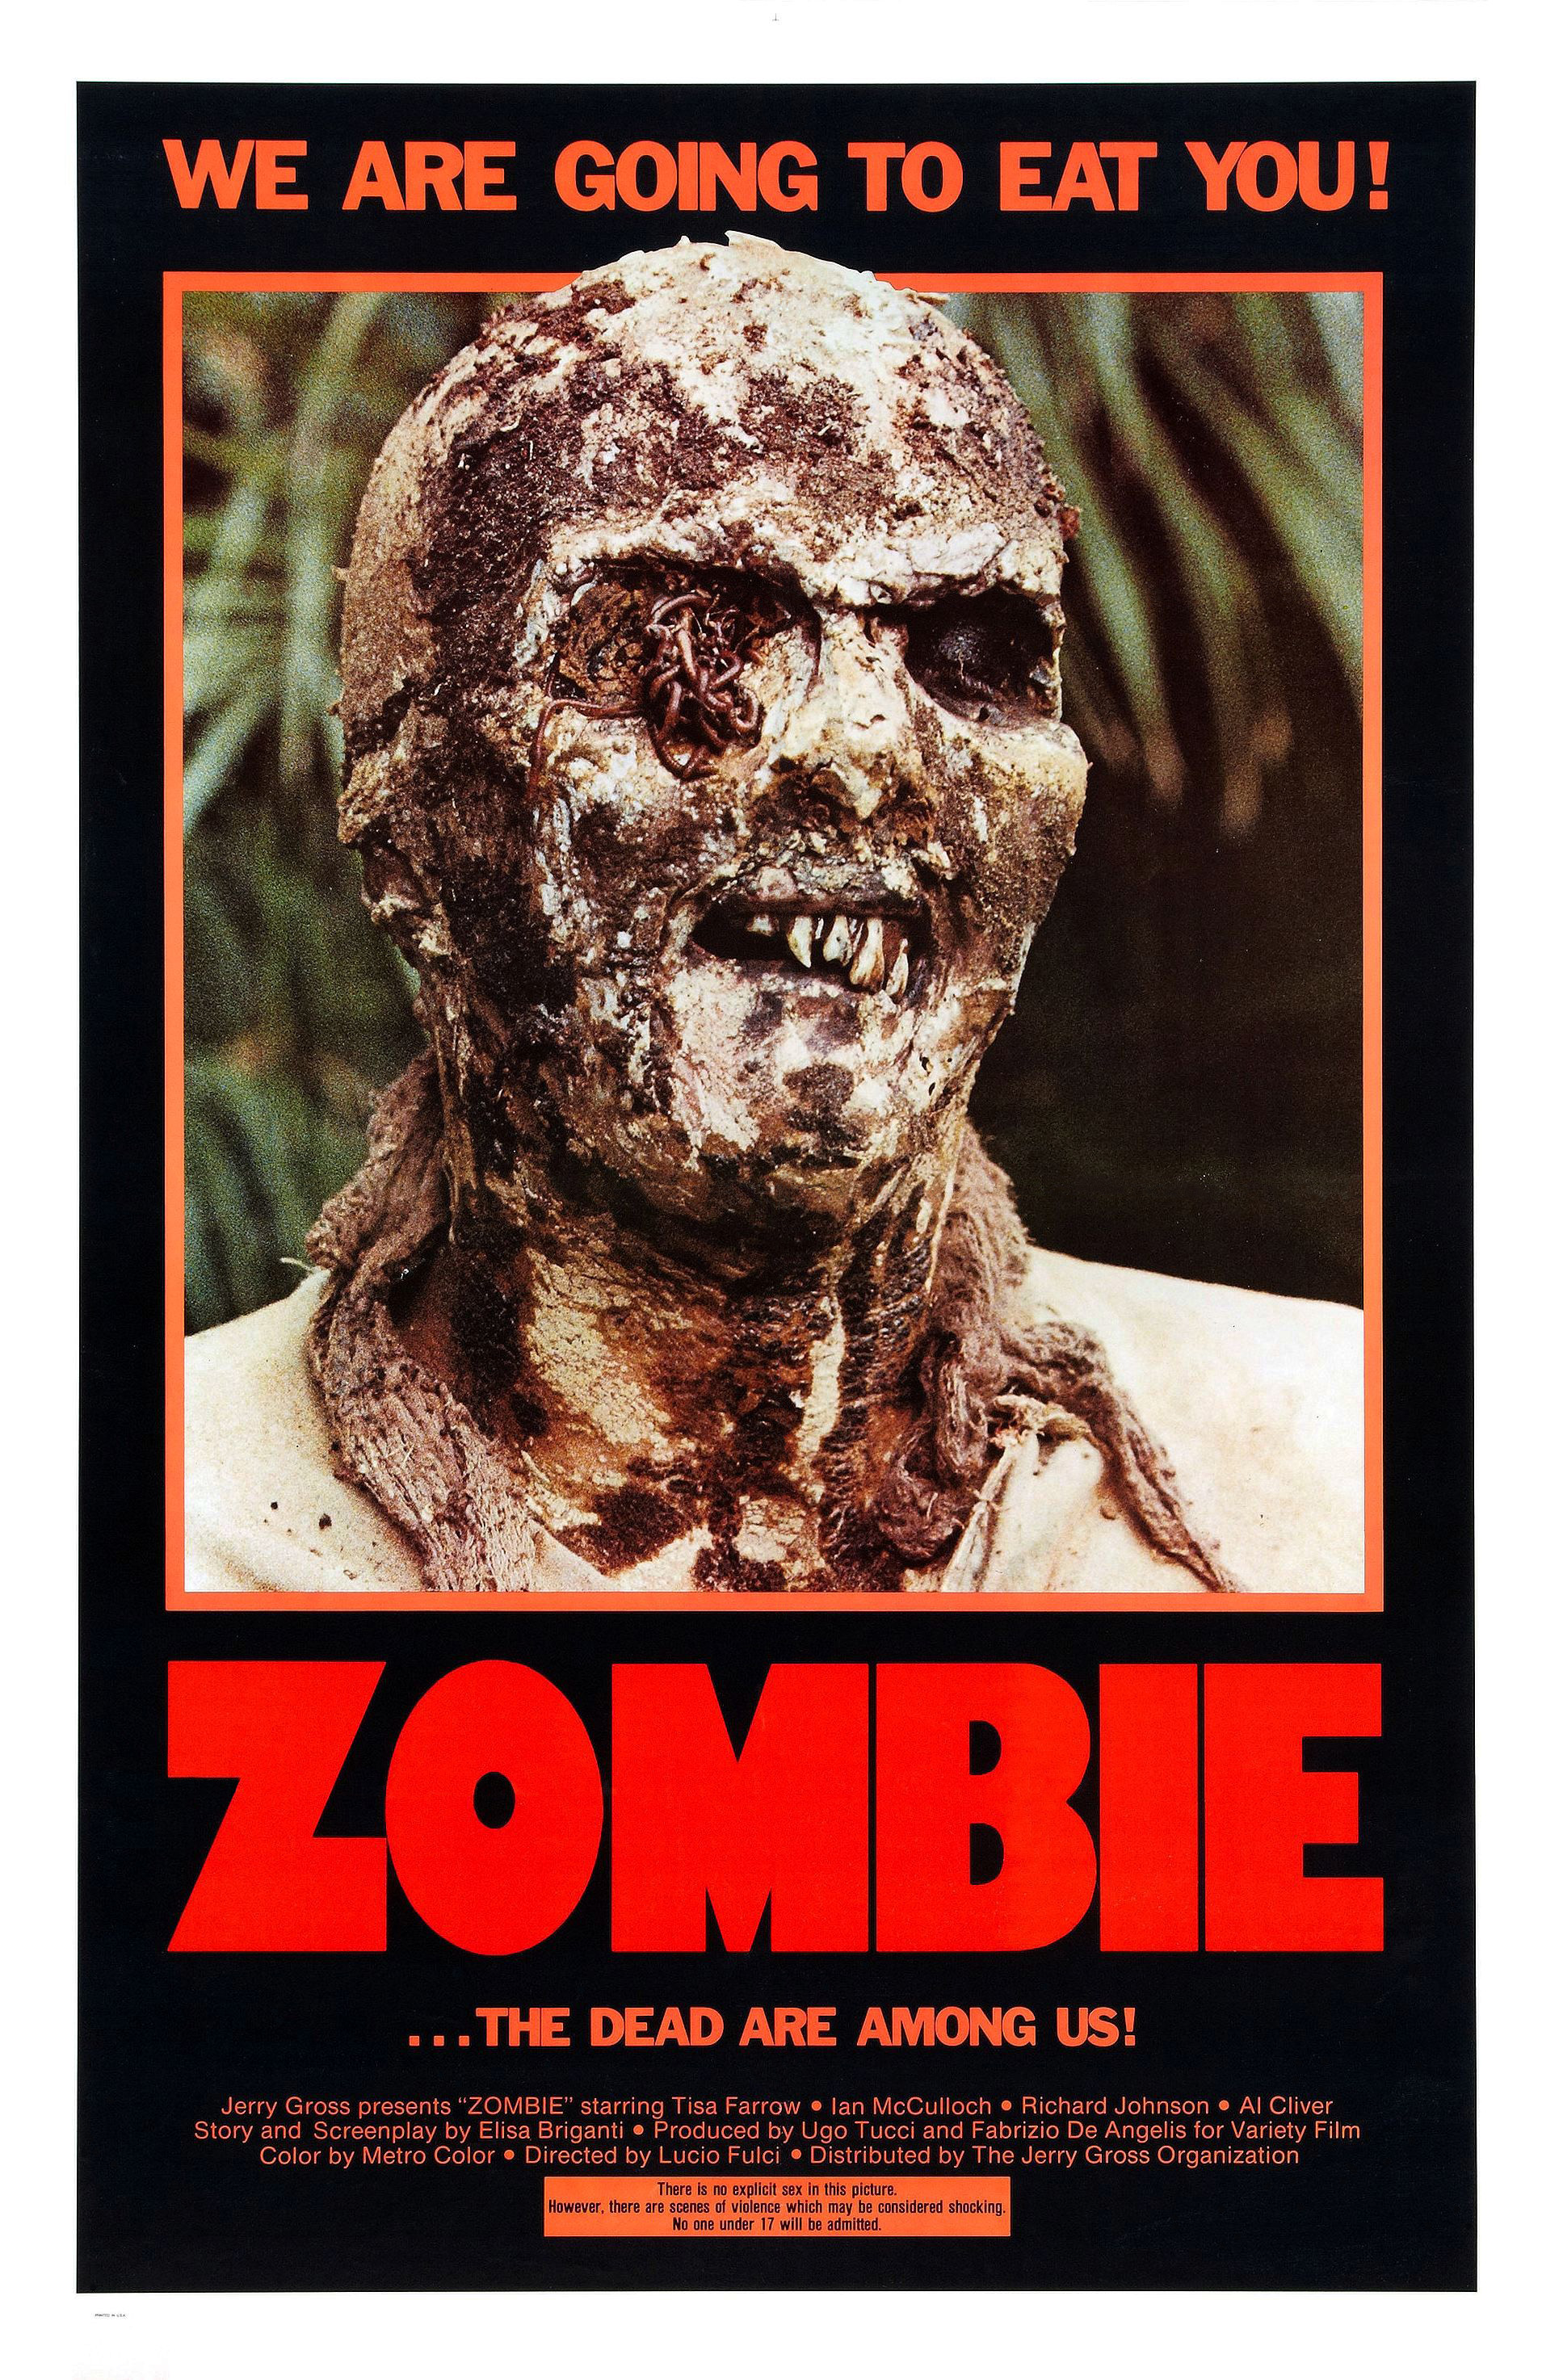 Zombie (1979) - Directed by: Lucio FulciStarring: Tisa Farrow, Ian McCulloch, Richard JohnsonRated: R for Horror Violence/Gore and NudityRunning Time: 1 h 31 mTMM Score: 3 stars out of 5STRENGTHS: Practical EffectsWEAKNESSES: Pacing, Incredibly Stupid Characters, Writing (?)